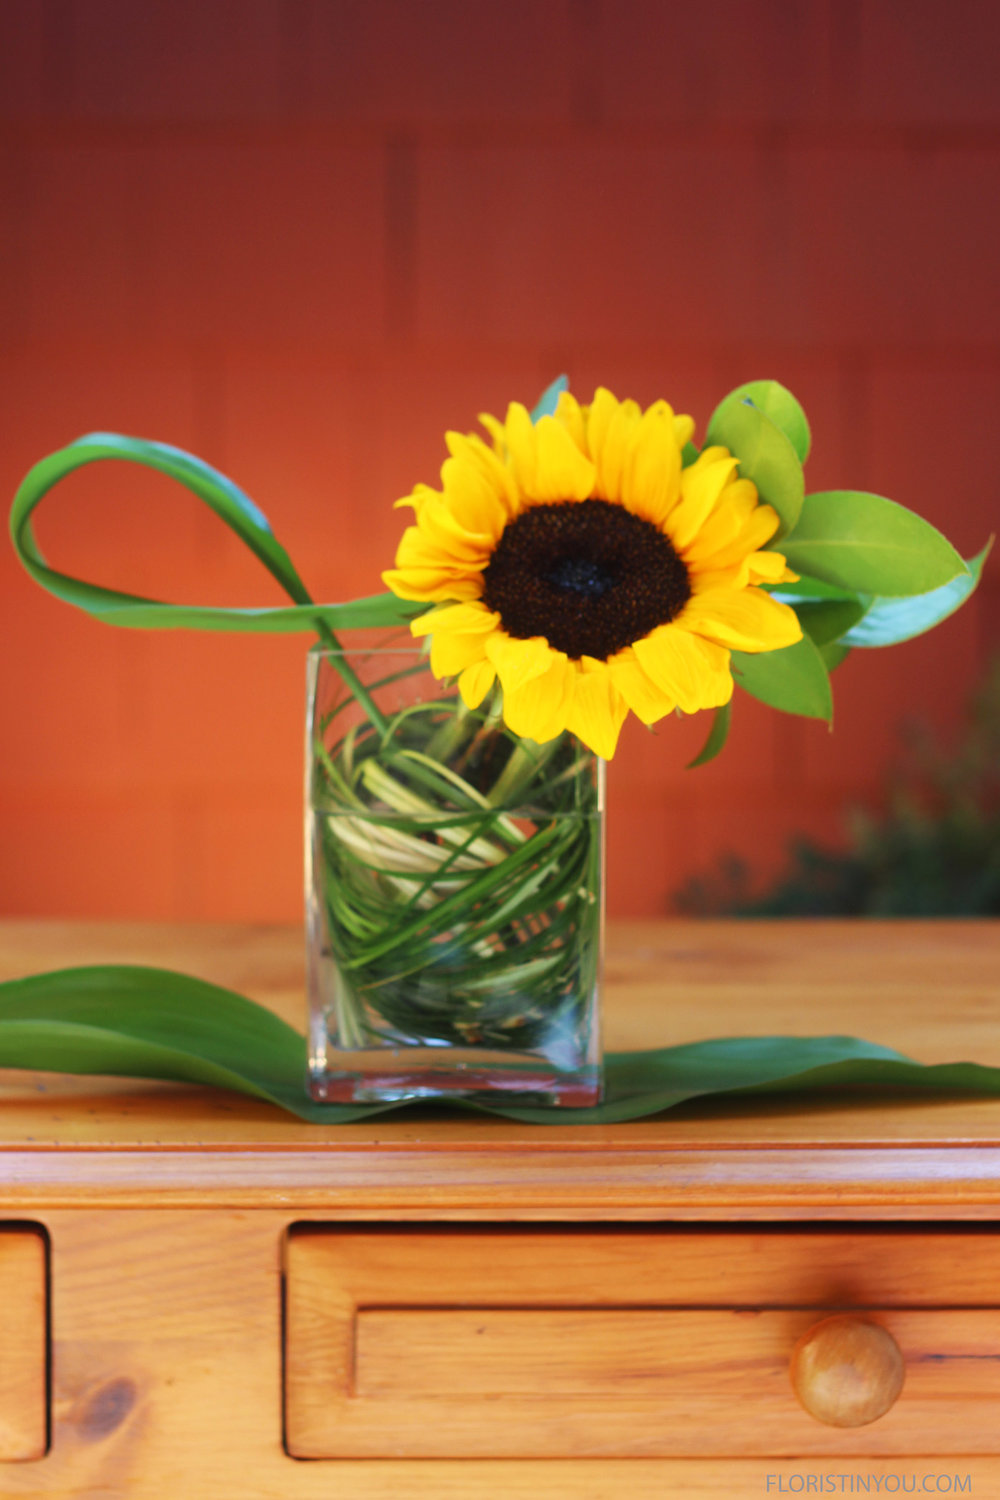 Sunflowers in a Rectangular Vase